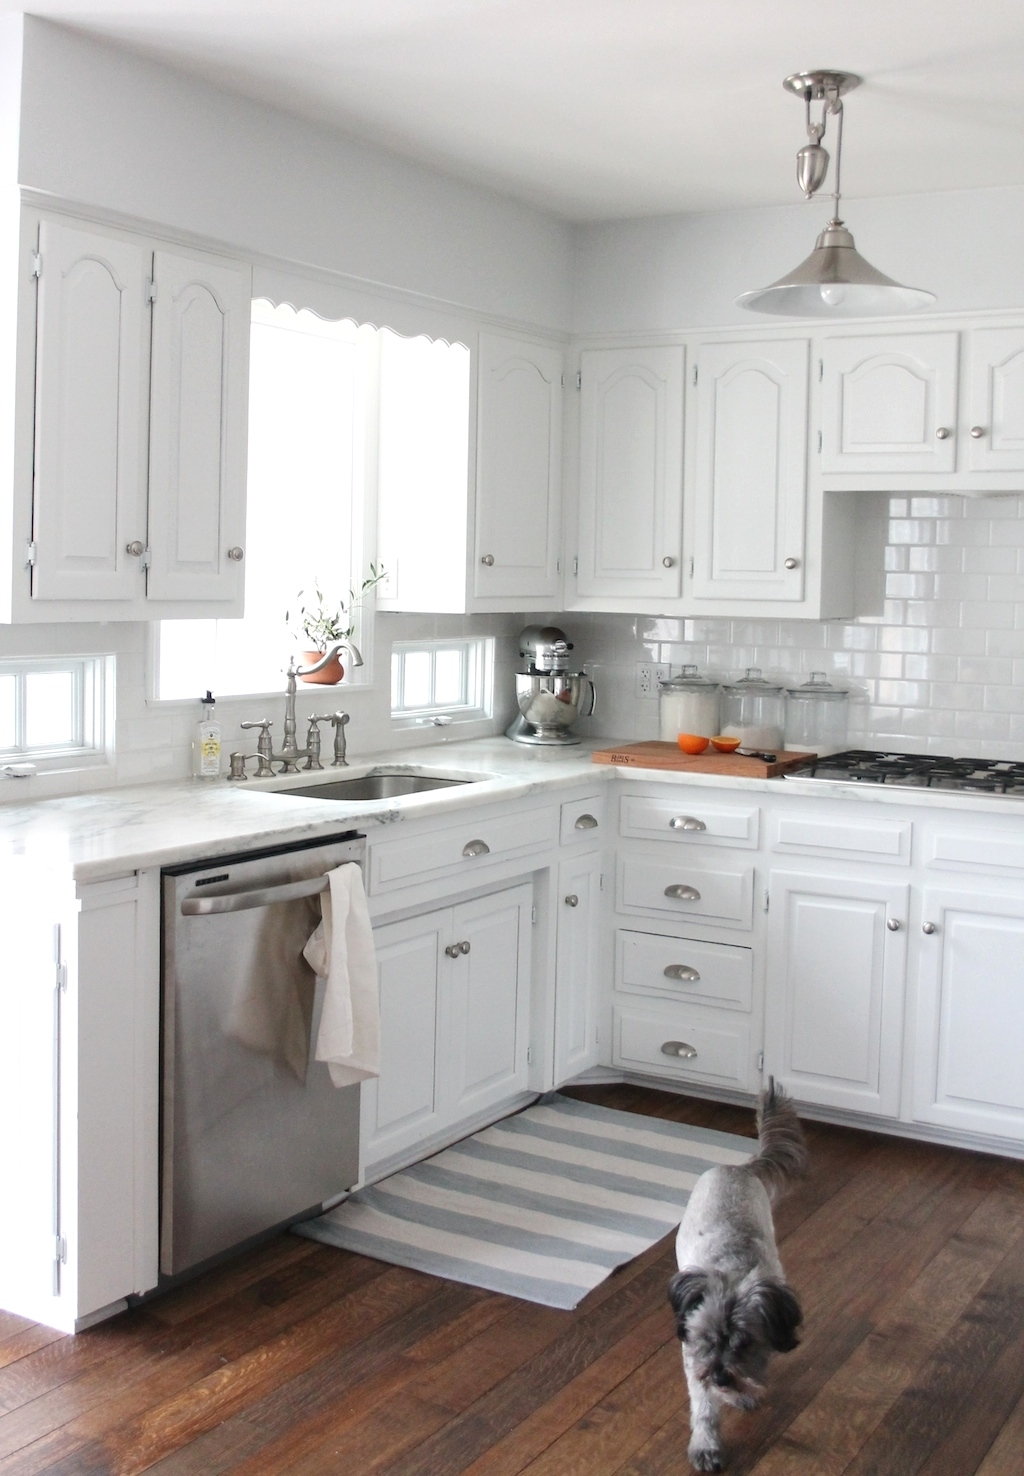 Permalink to Small Kitchen Pictures White Cabinets